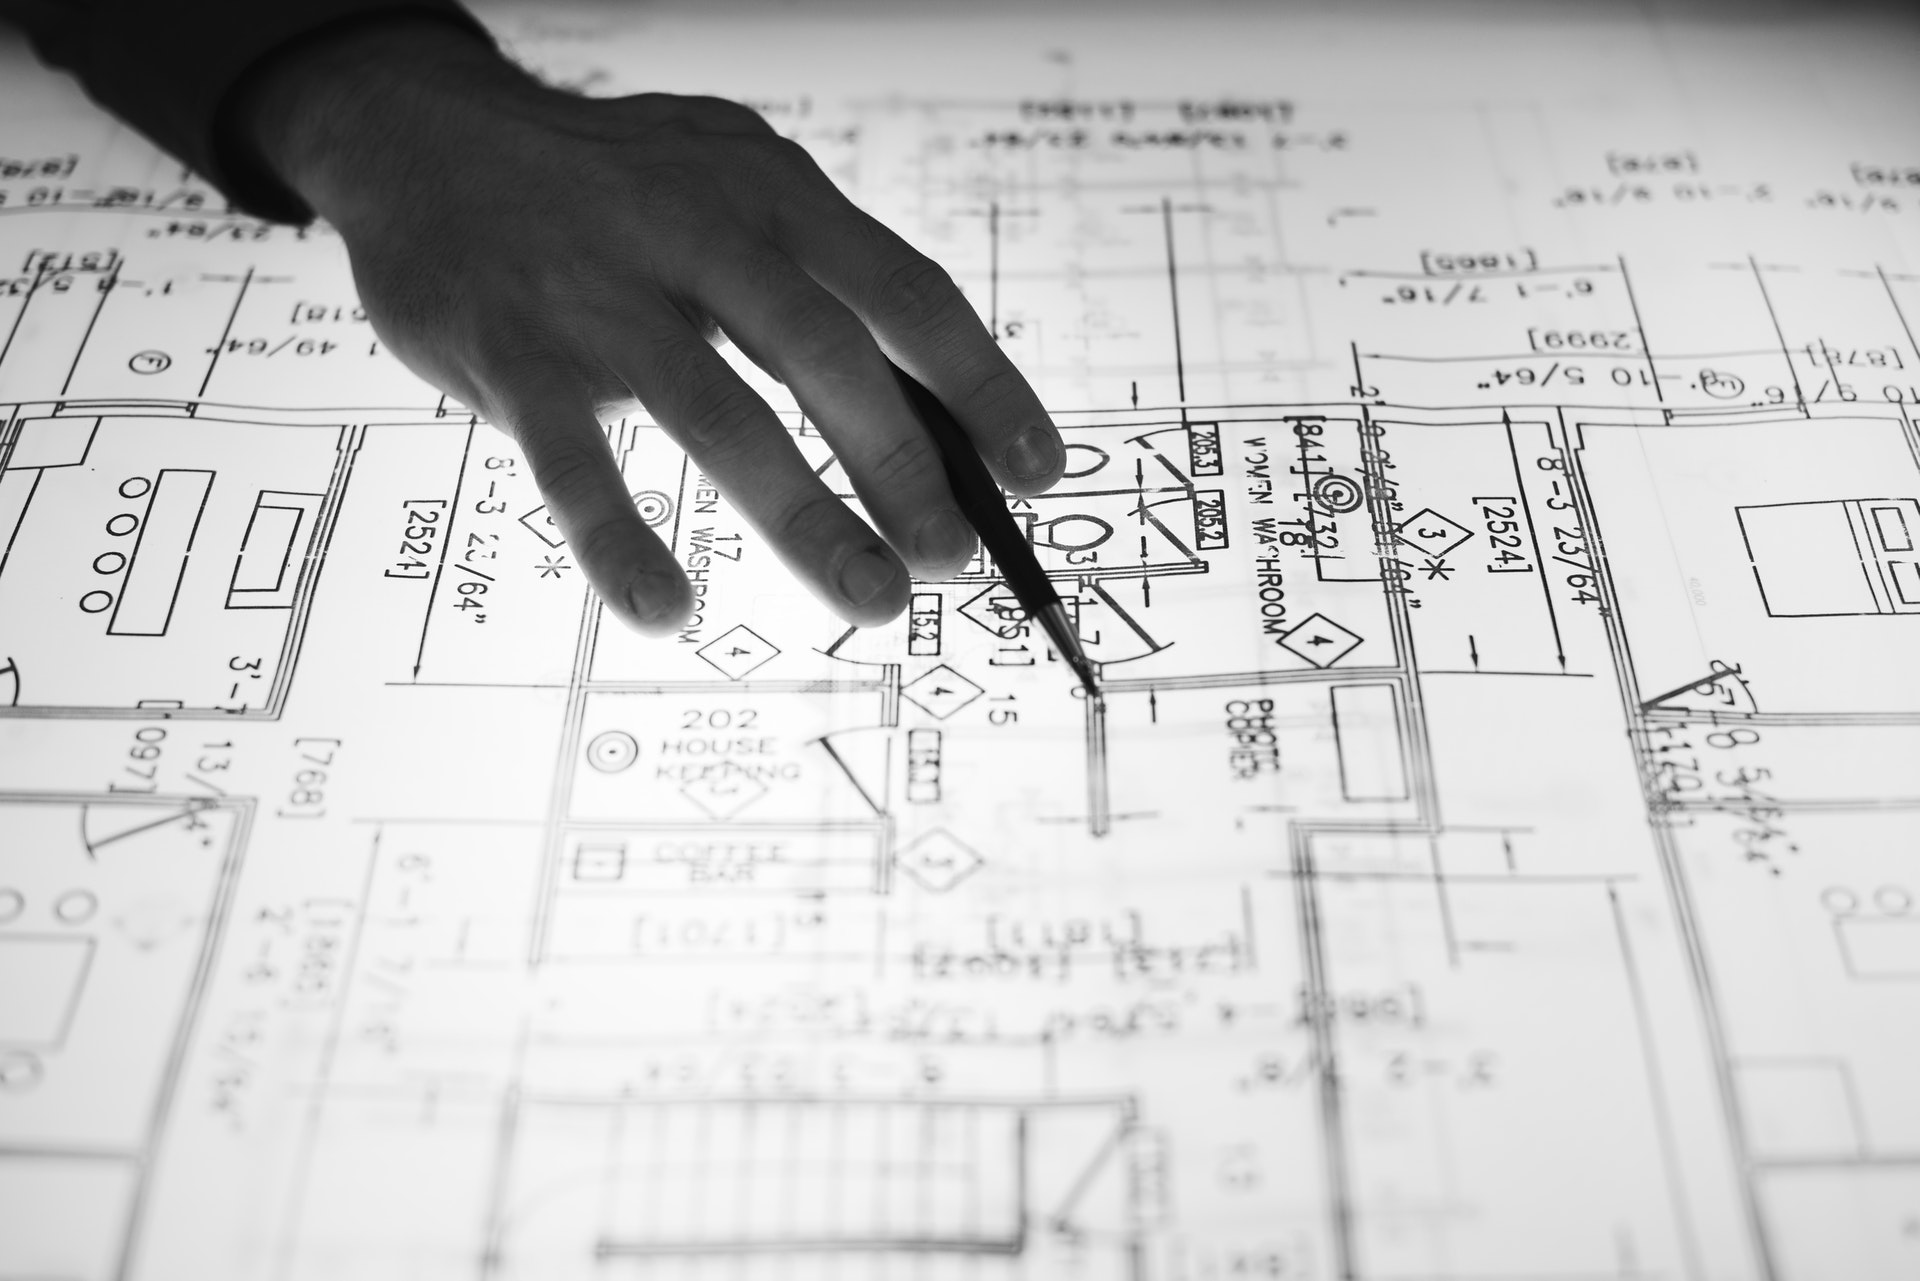 A Surveyor Looking Over Building Plans - Surveyors - The 14 Best Engineering Jobs For The Future